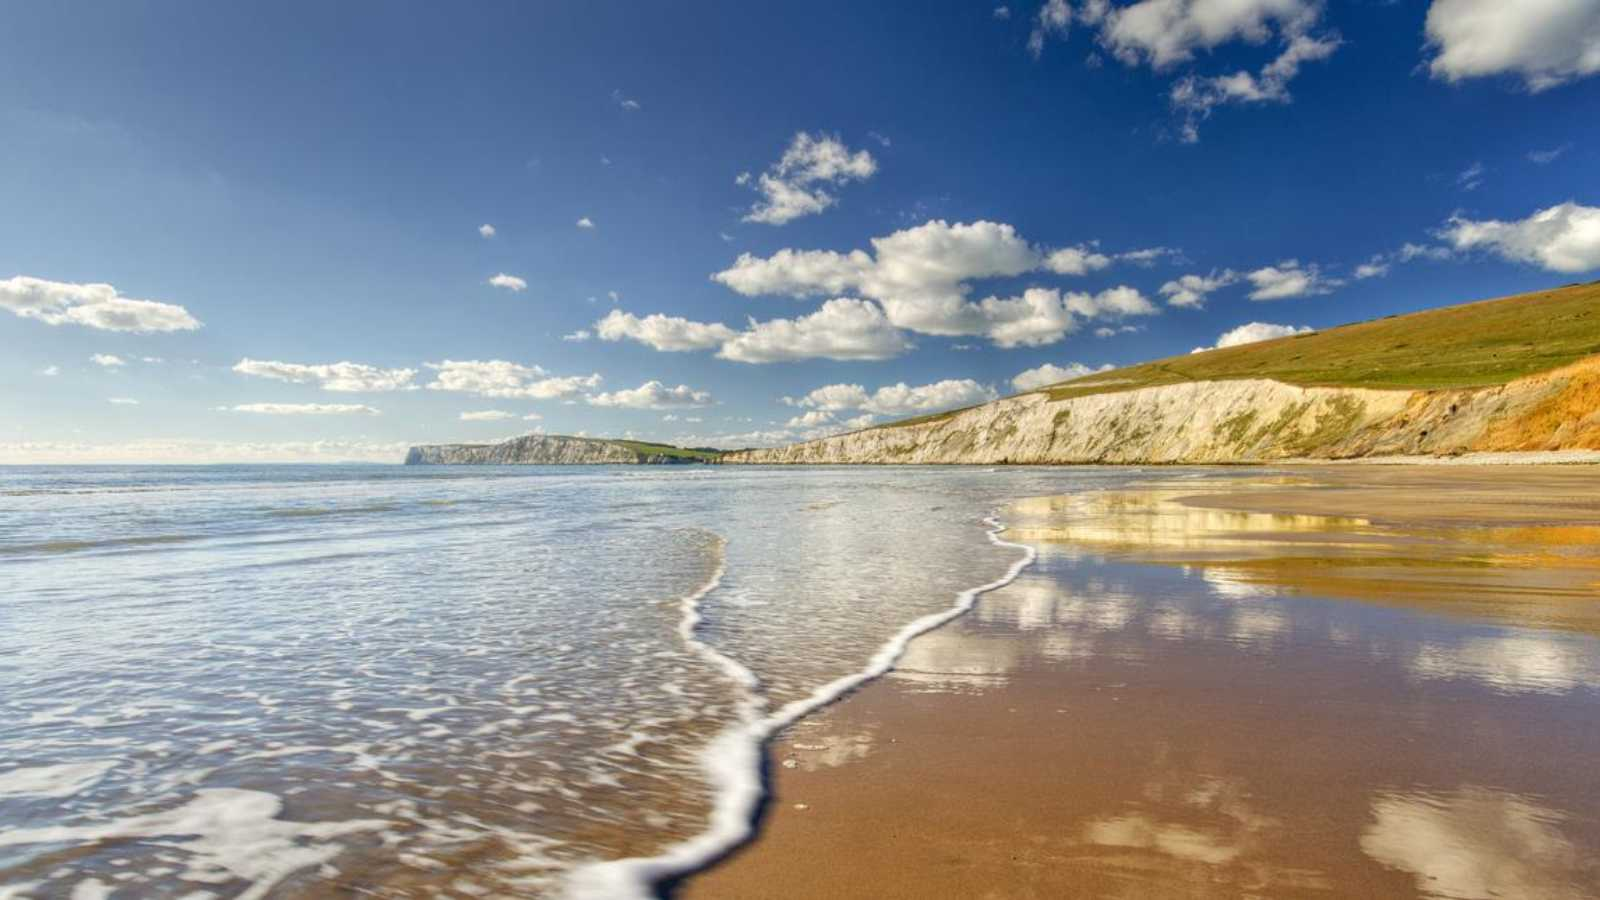 The best beaches you can visit right here in the UK